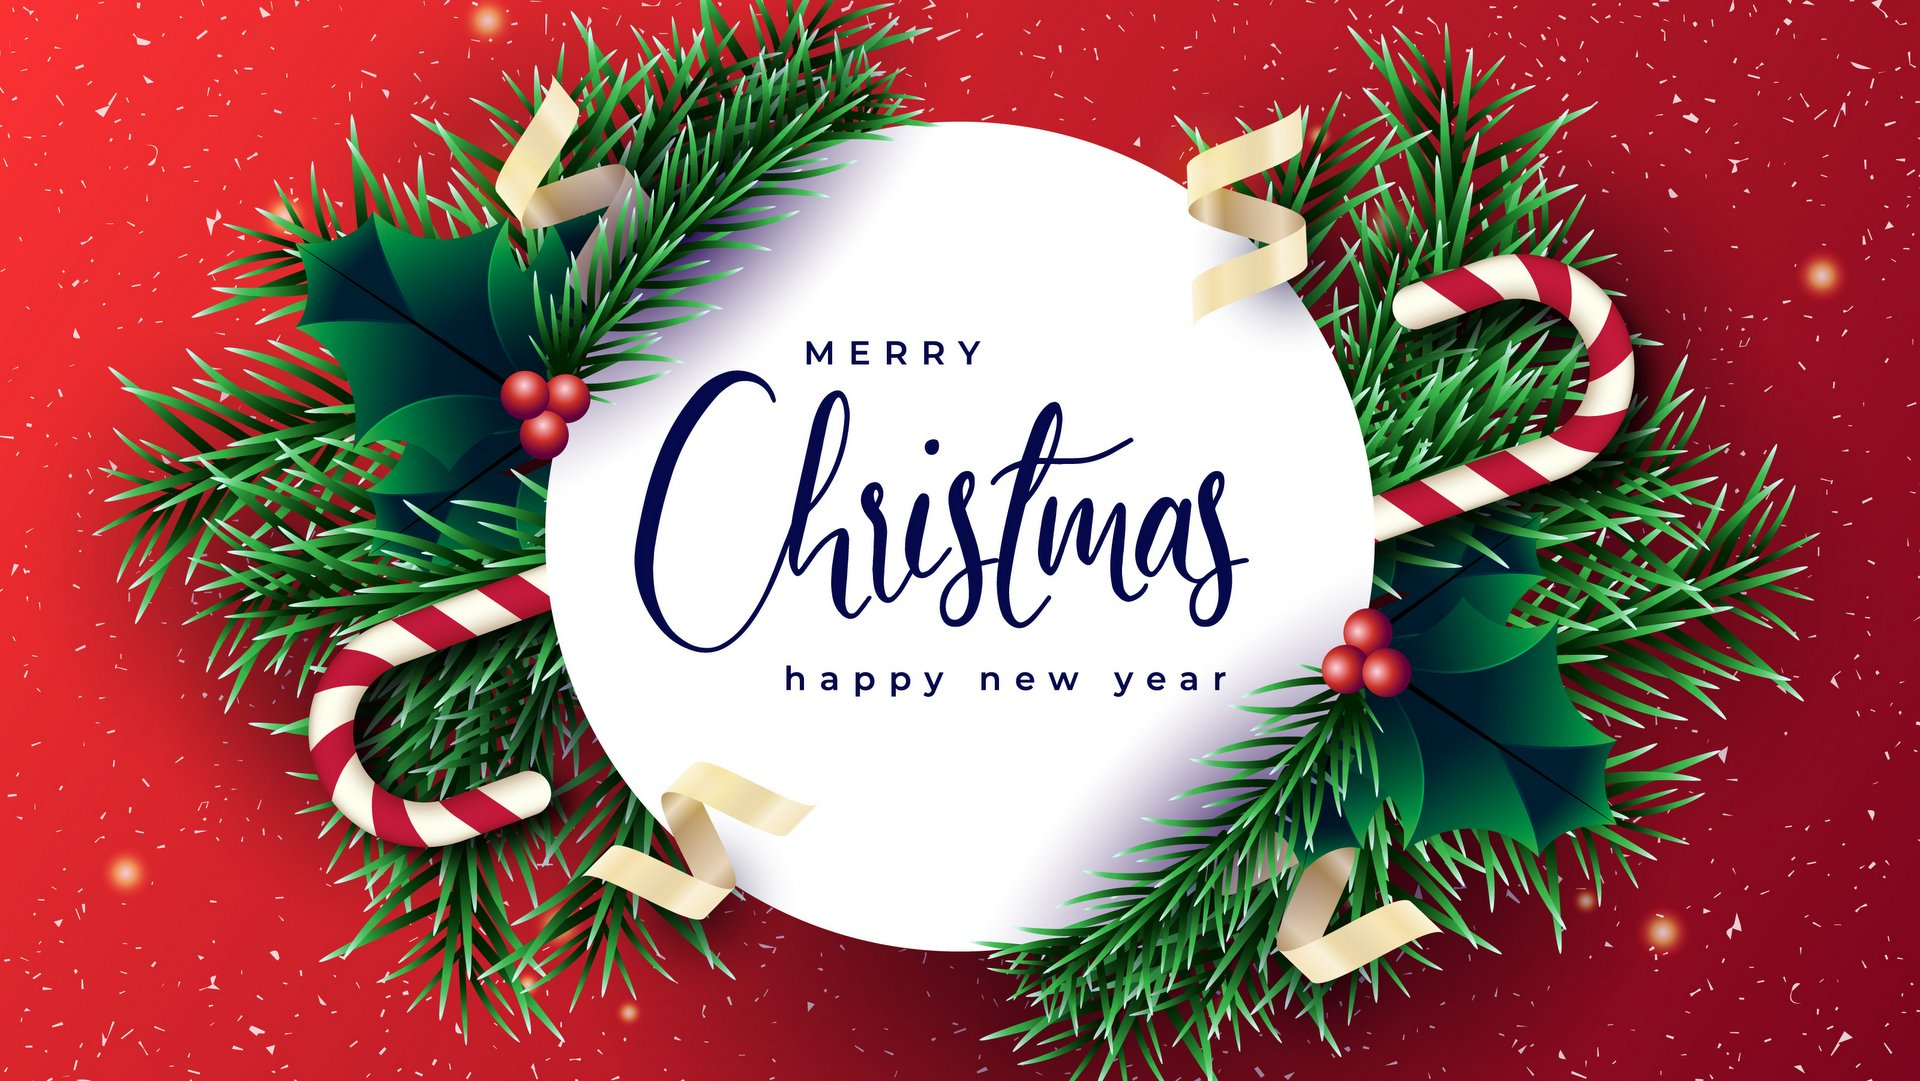 Merry Christmas and Happy New Year Background 1080p